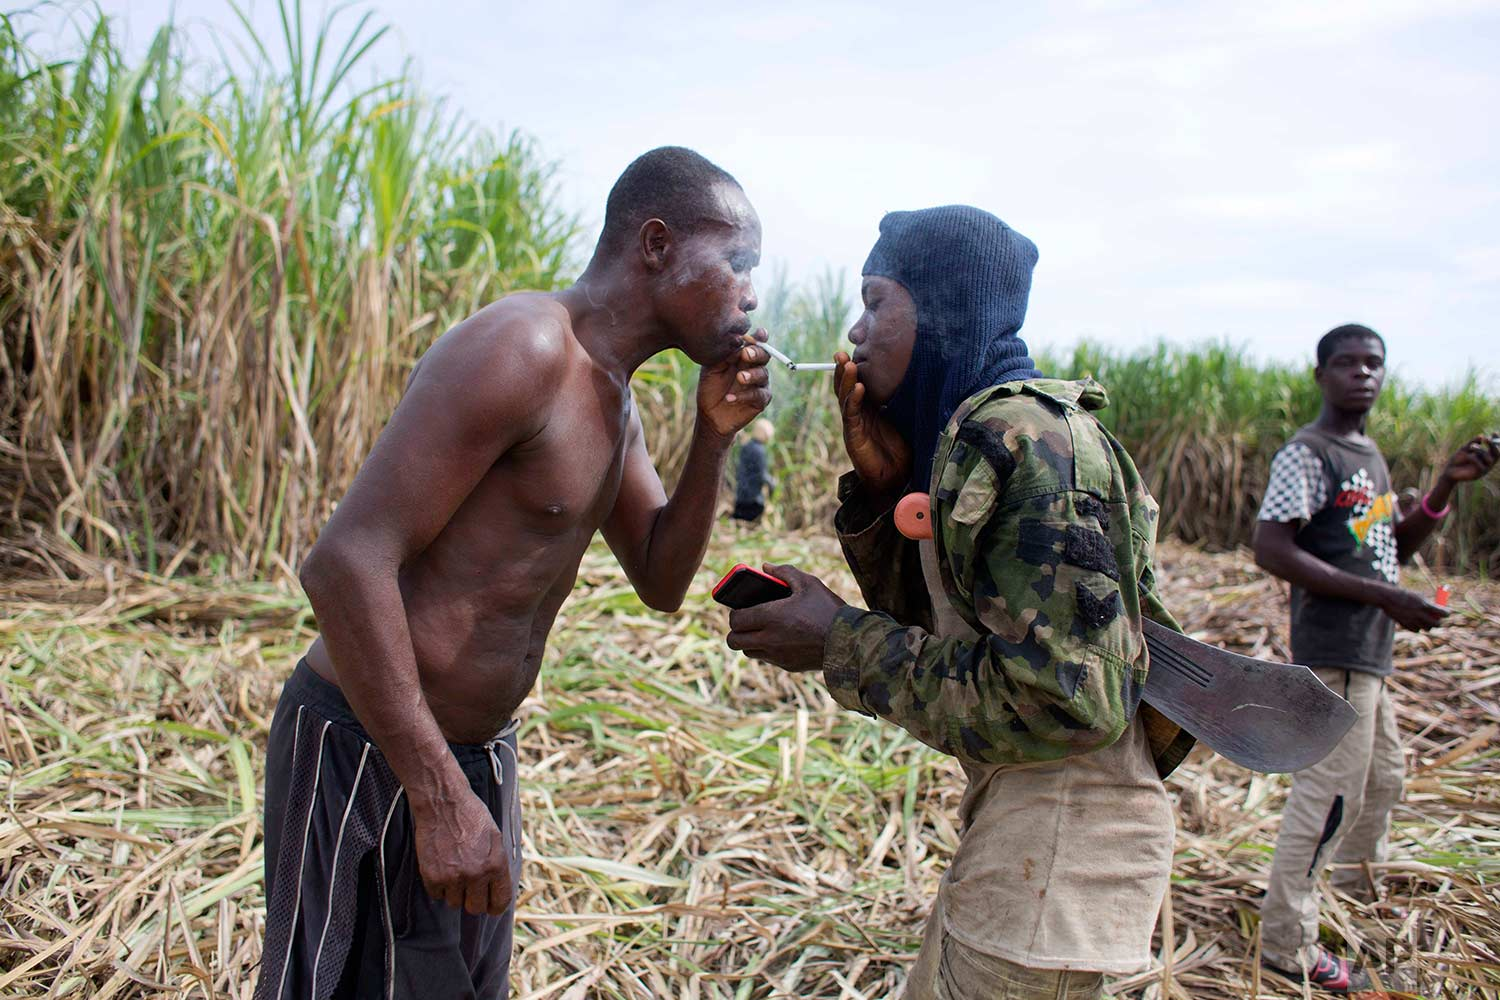 In this June 17, 2017 photo, Ronald Sincere, 20, right, lights his cigarette from that of Medez Cazeau, 42, as they take a break from cutting sugar cane on the Aubry farm in a rural area of Leogane, Haiti. (AP Photo/Dieu Nalio Chery)